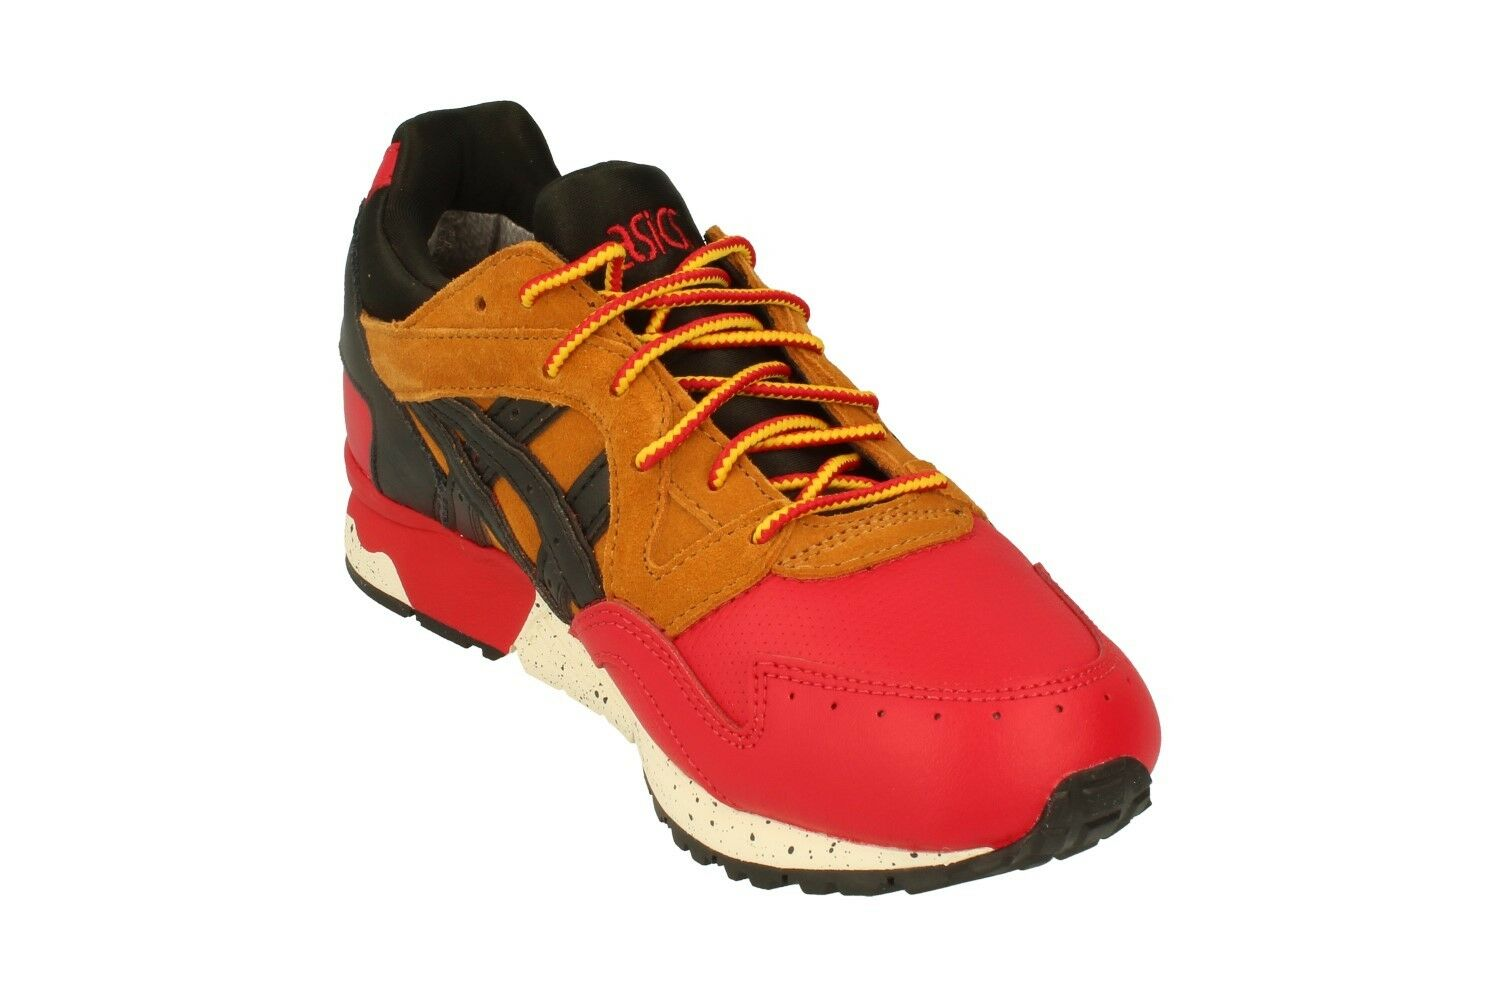 Asics Gel-Lyte V G-Tx Goretex Mens Running Shoes Trainers HL6E2 2590 Sneakers Shoes Running a65814